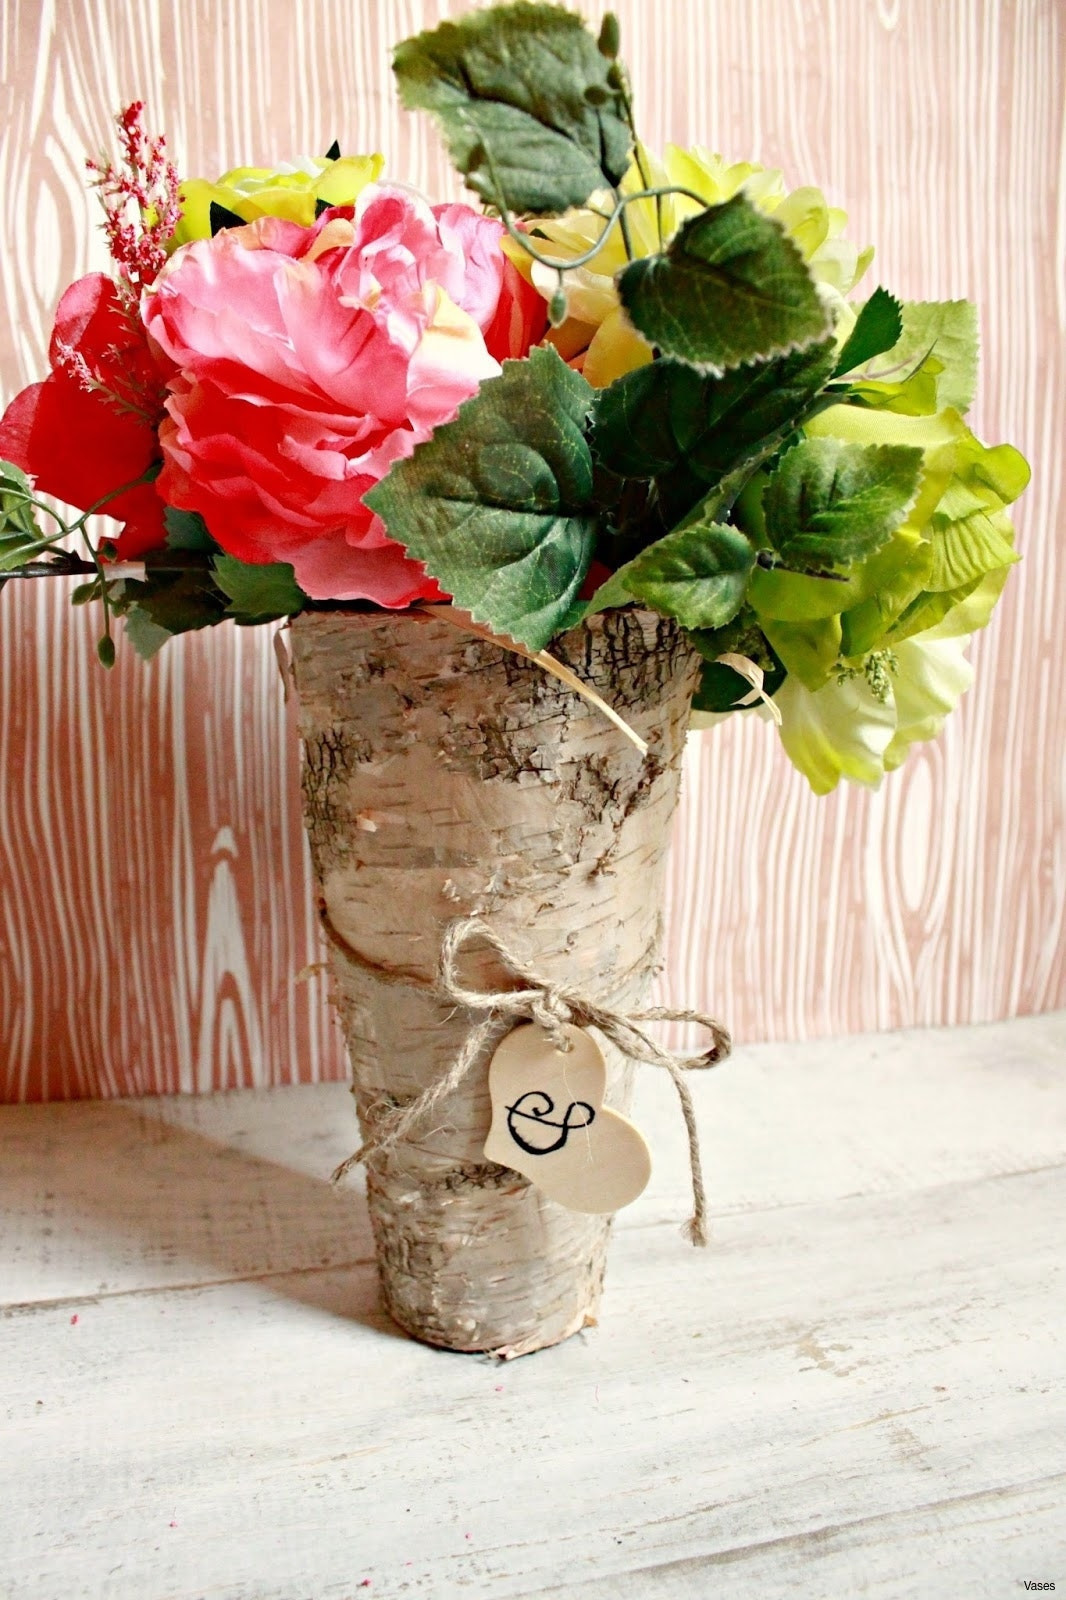 stay in the vase flower holder of 27 beautiful flower arrangements square vases flower decoration ideas regarding flower arrangements square vases lovely wooden wall vase beautiful wooden wedding flowers h vases diy wood